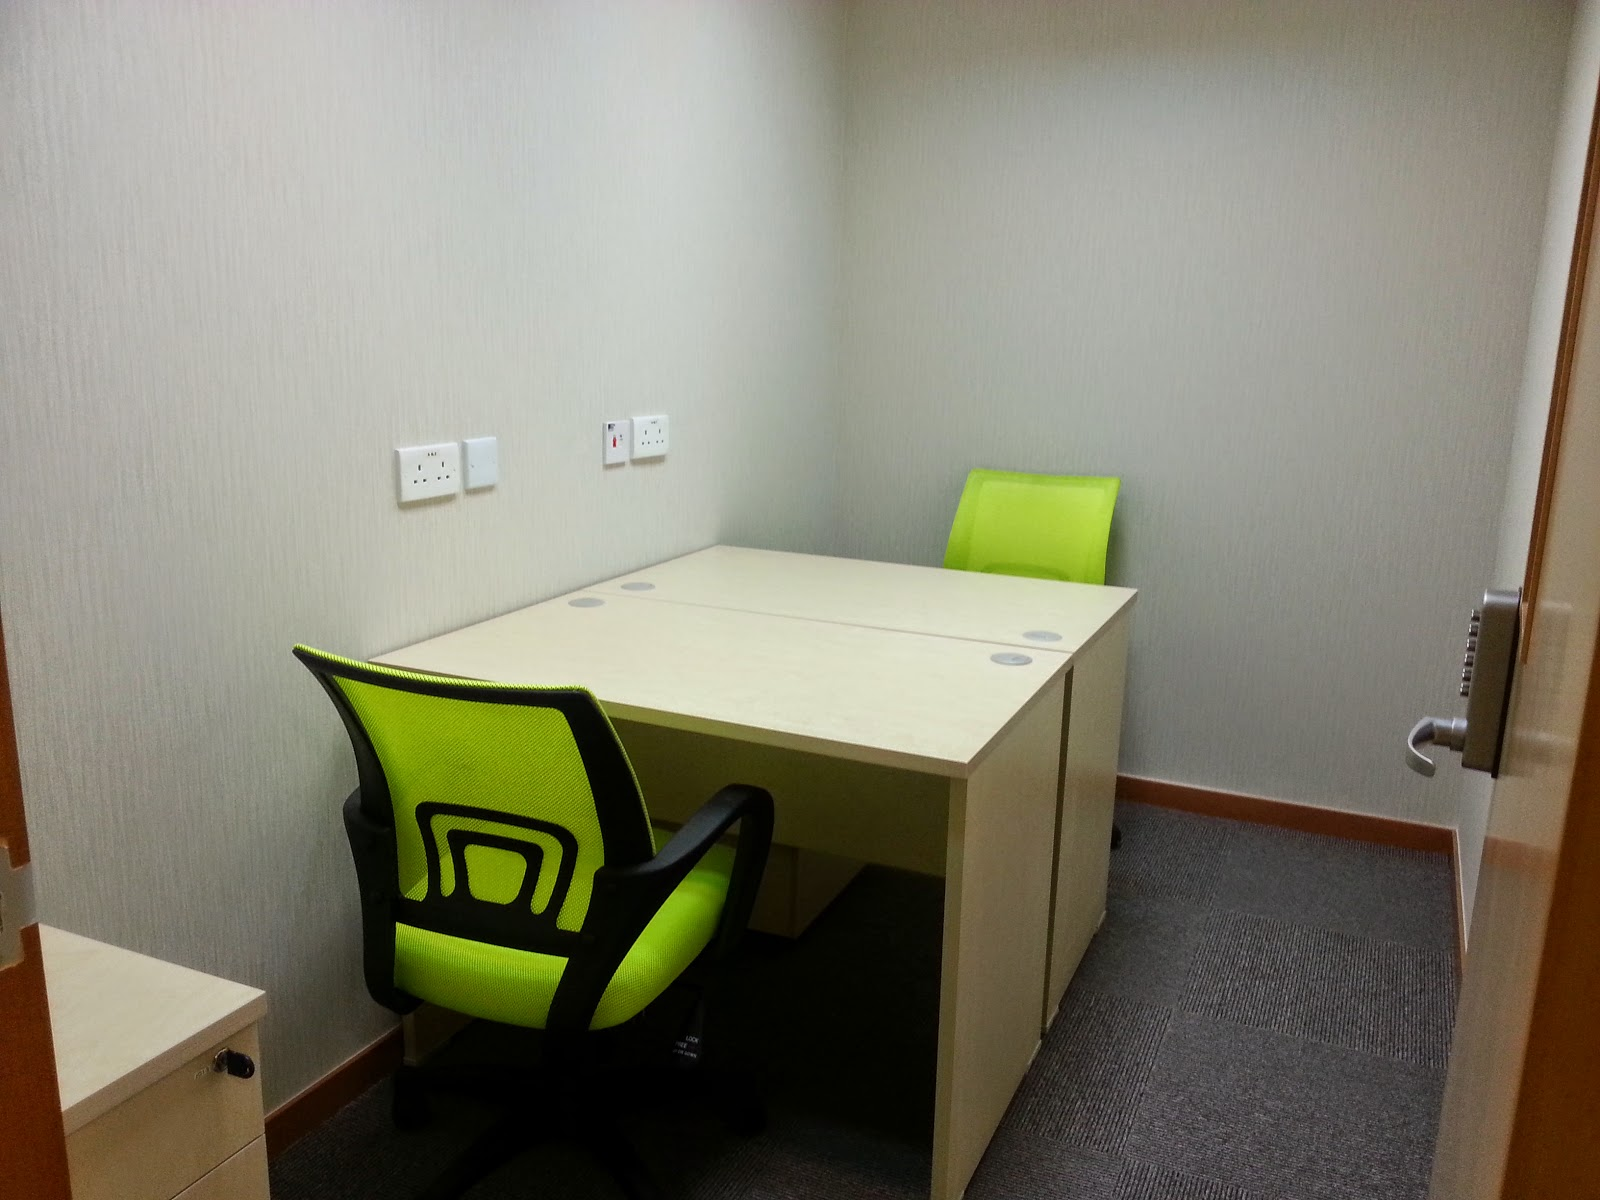 room,property,furniture,office,desk